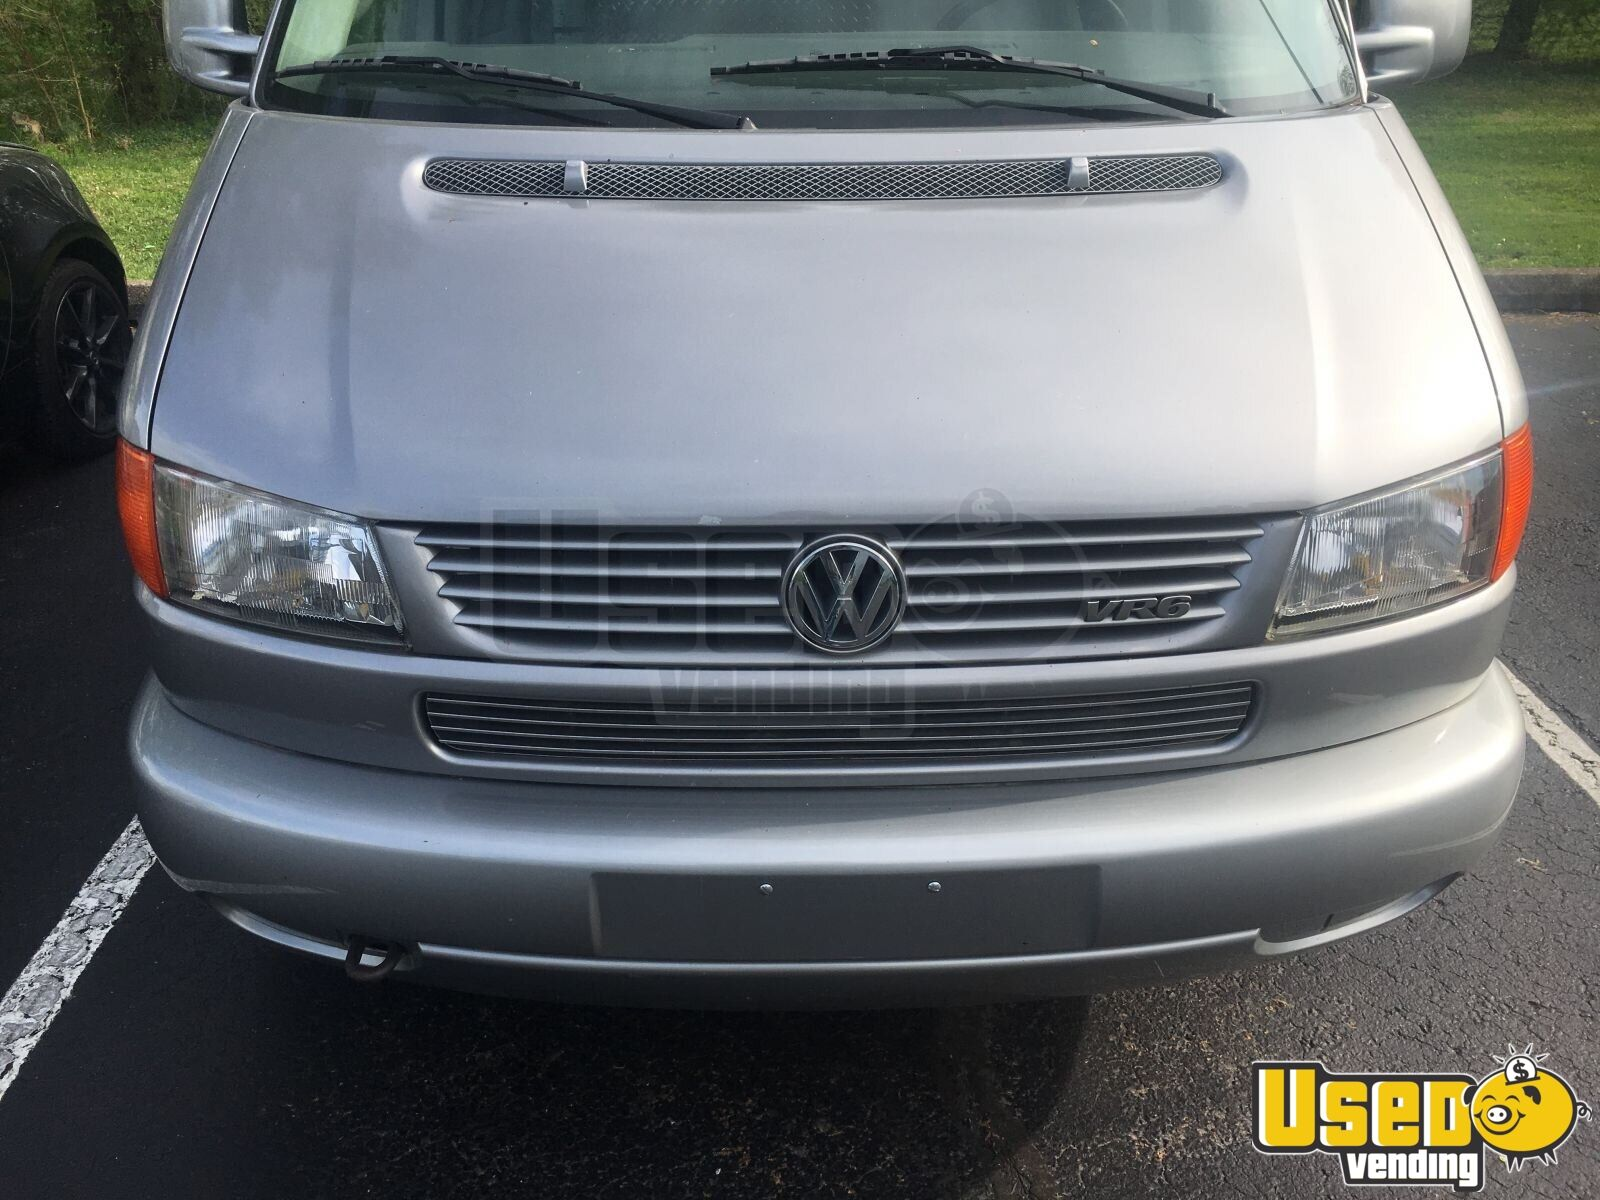 2001 Volkswagen Eurovan Coffee Truck Anti-lock Brakes Indiana Gas Engine for Sale - 12